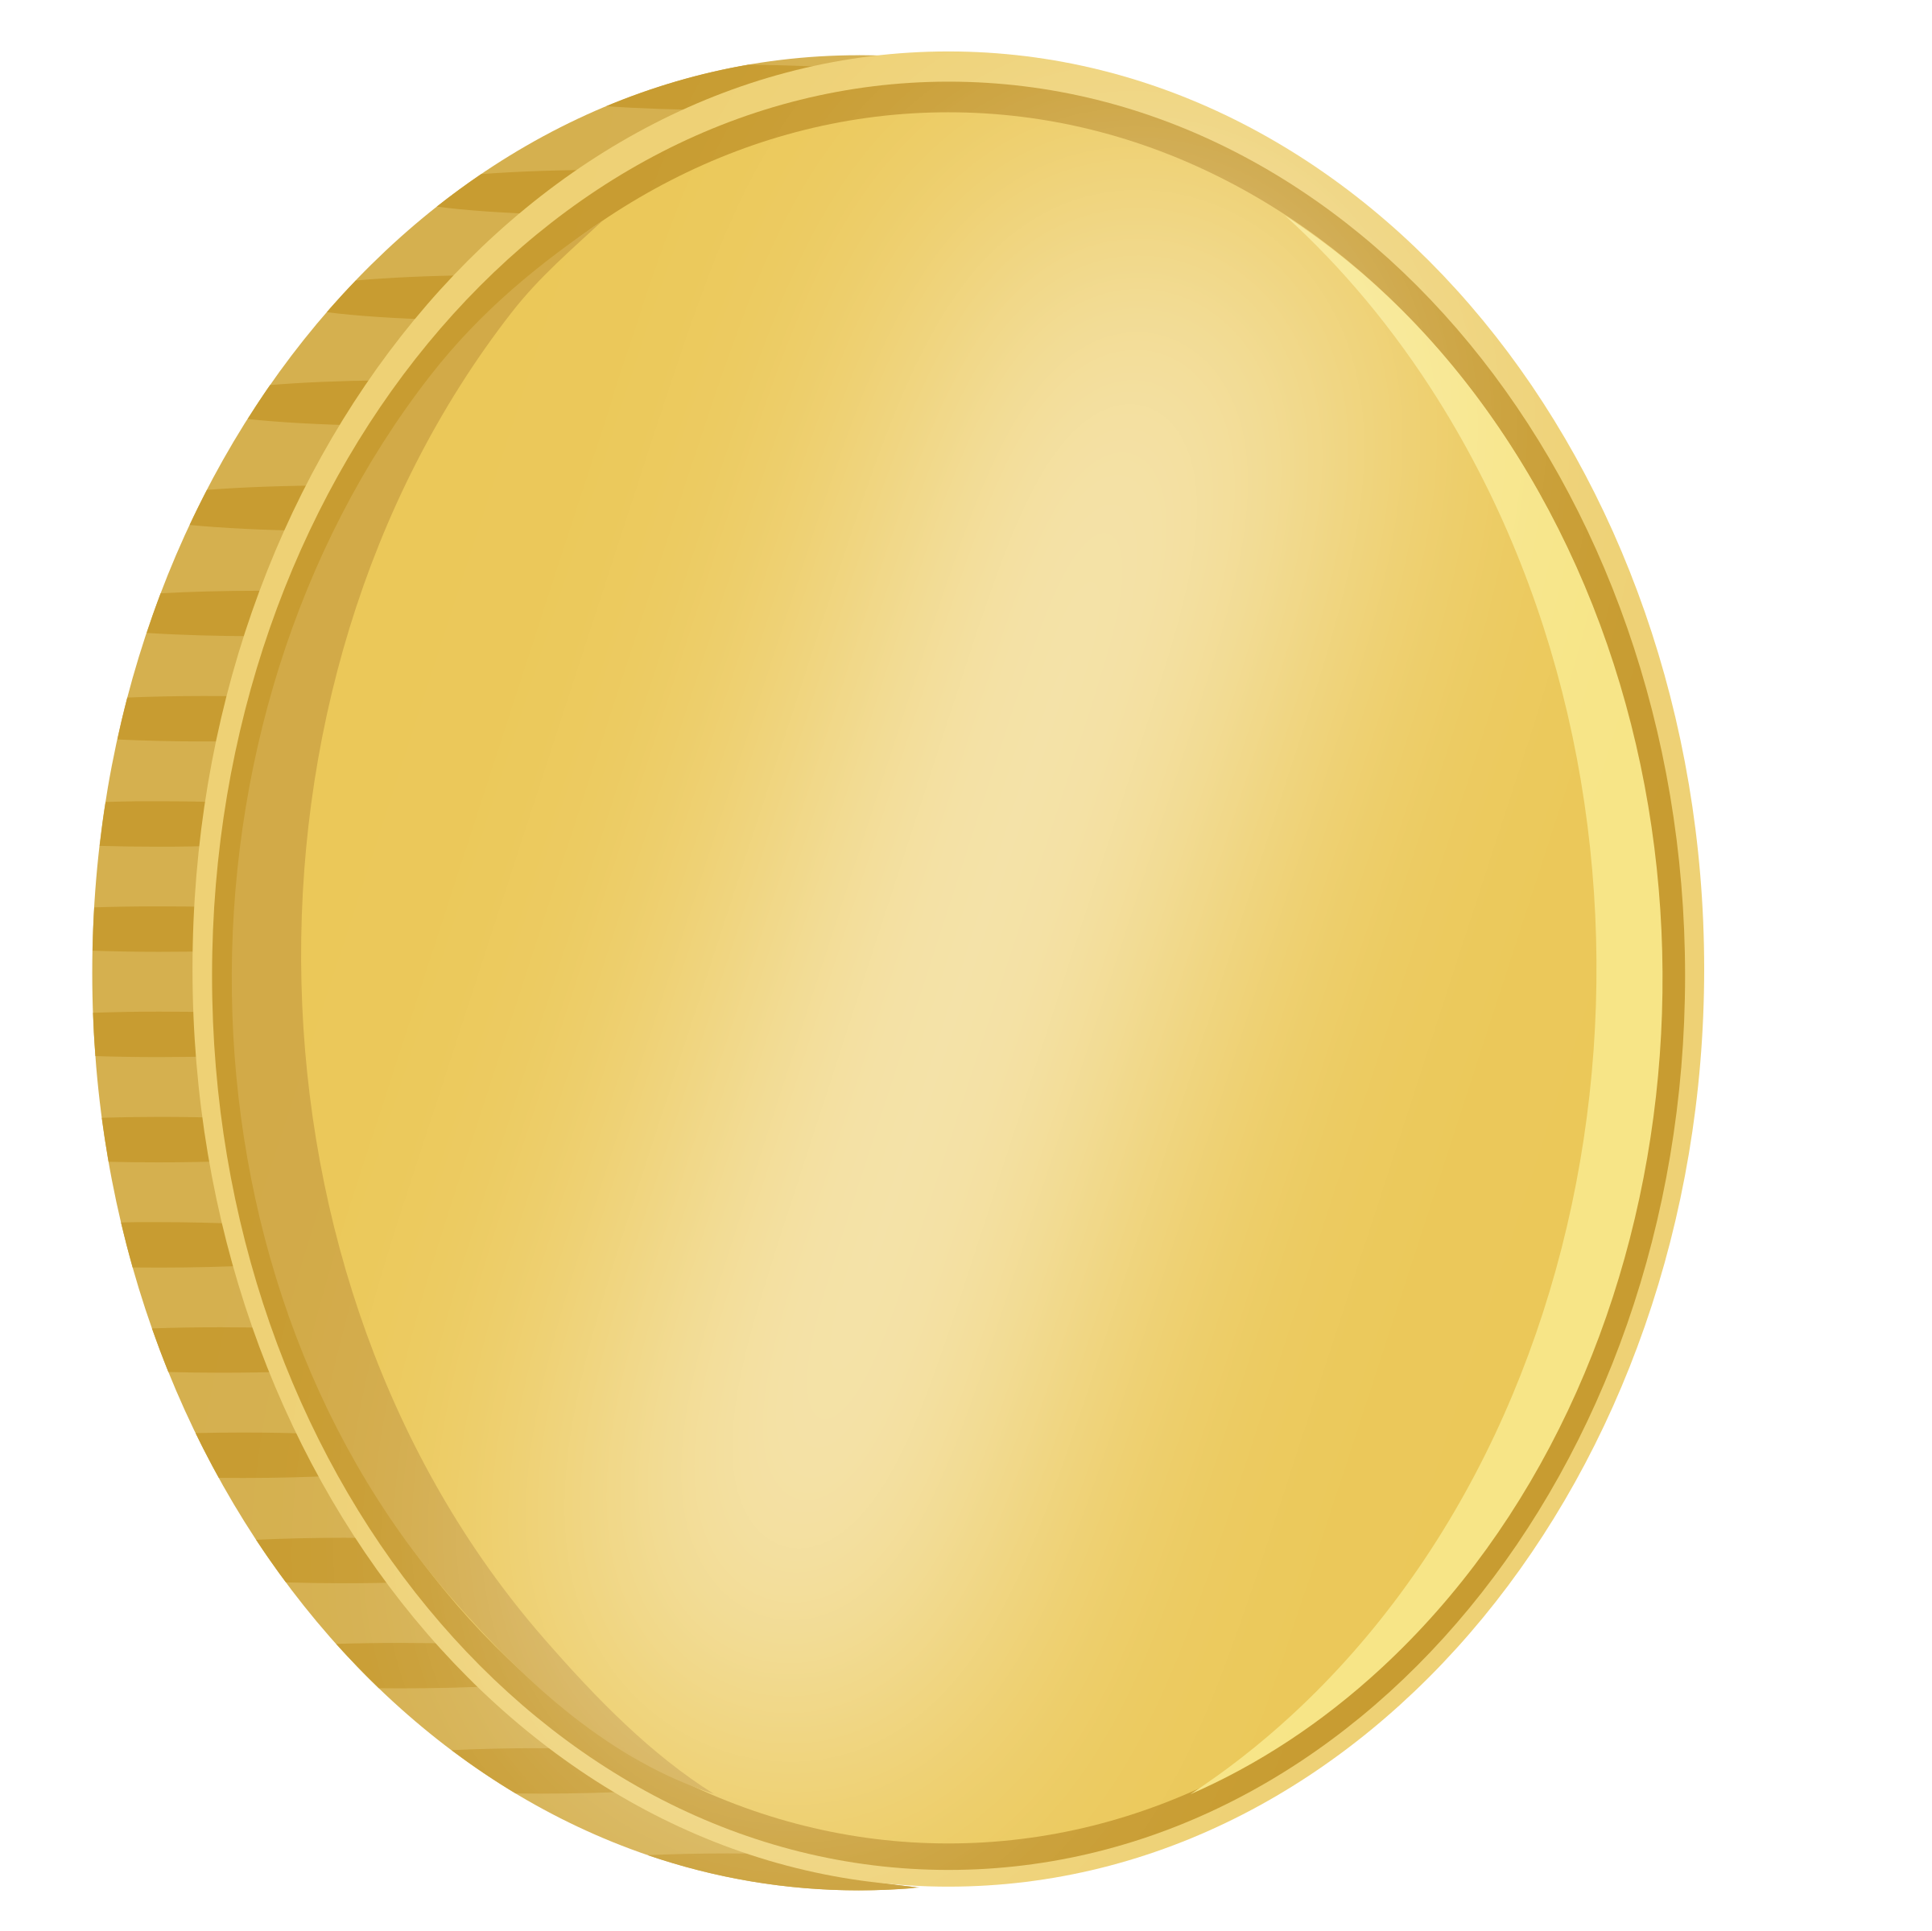 Blank Coin PNG - 152441